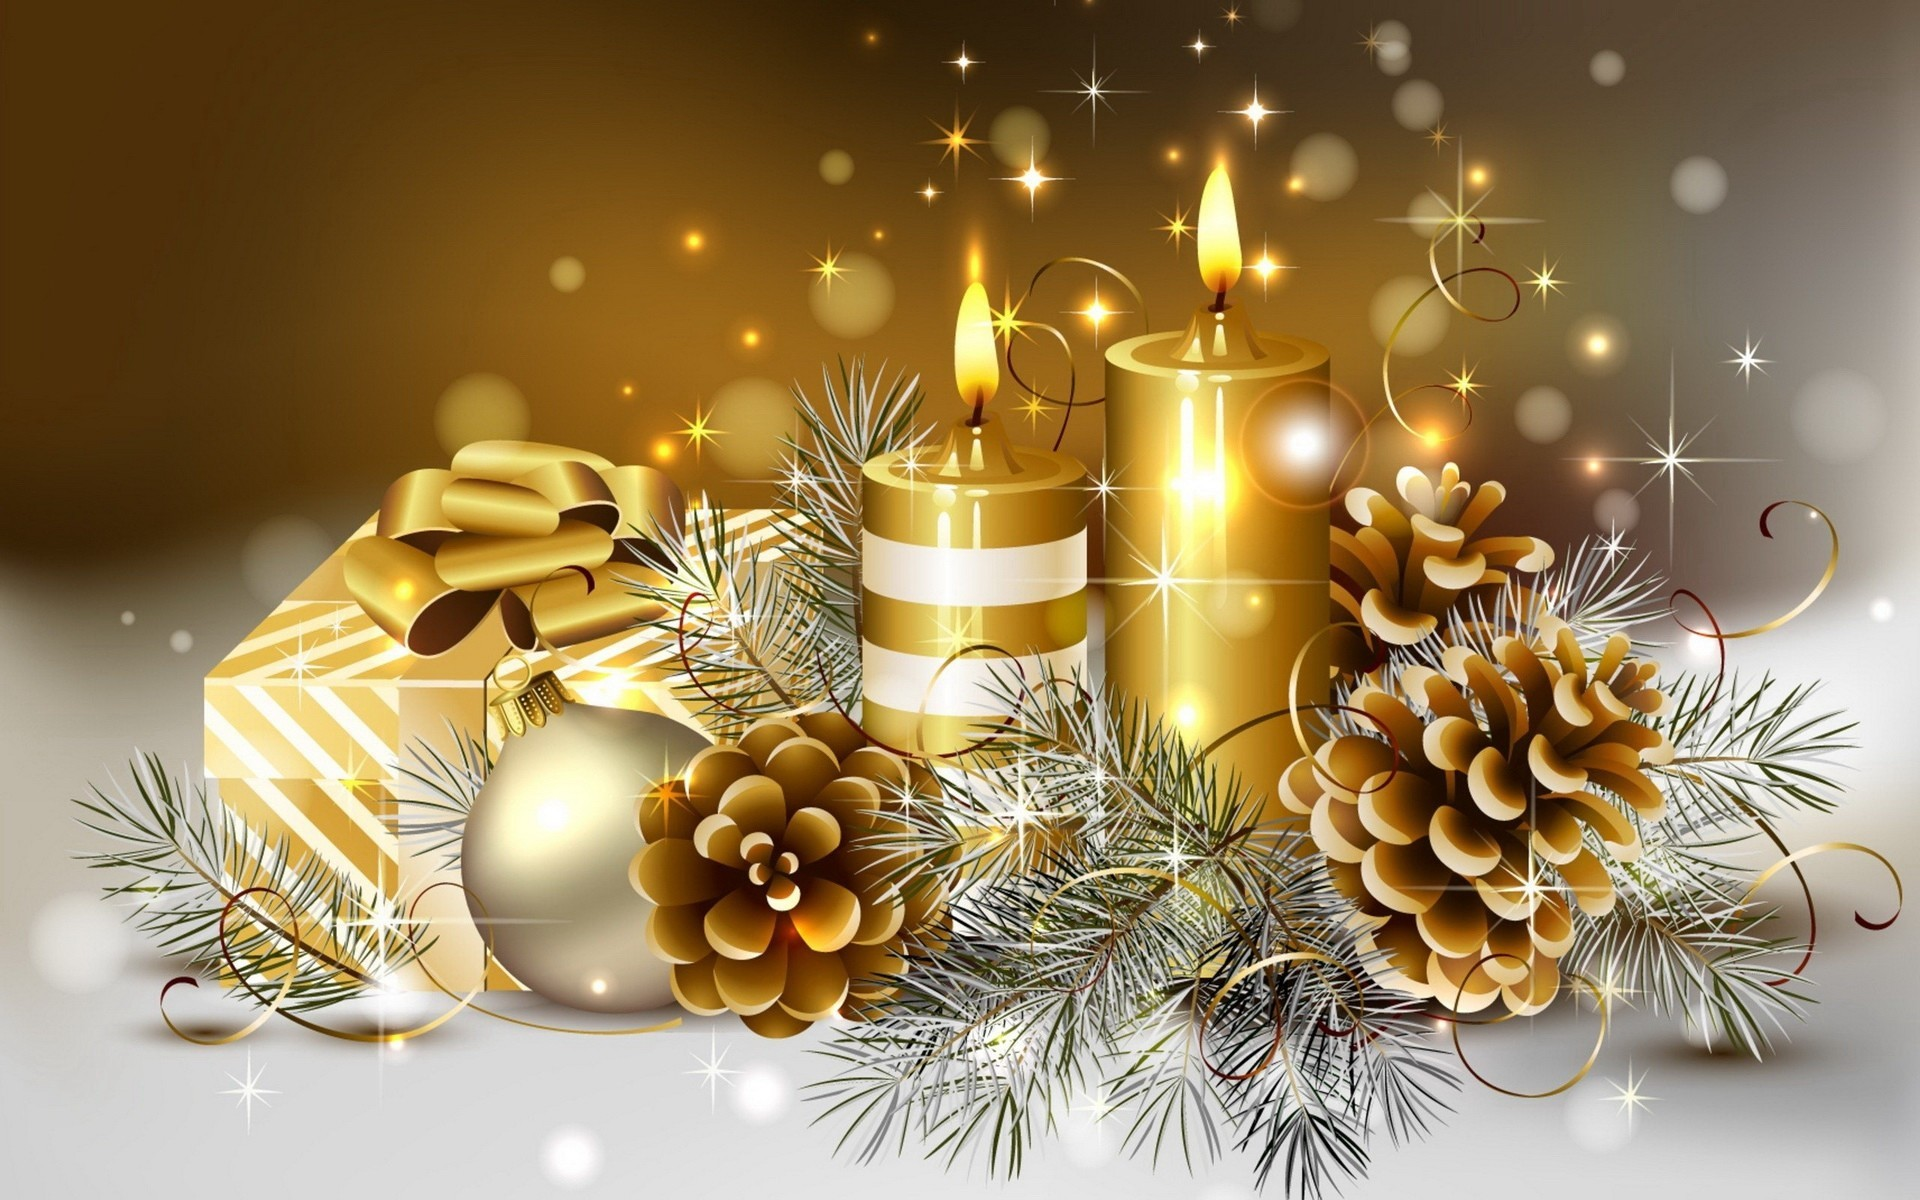 Res: 1920x1200,  Free Christmas Wallpaper Backgrounds | Wallpapers9